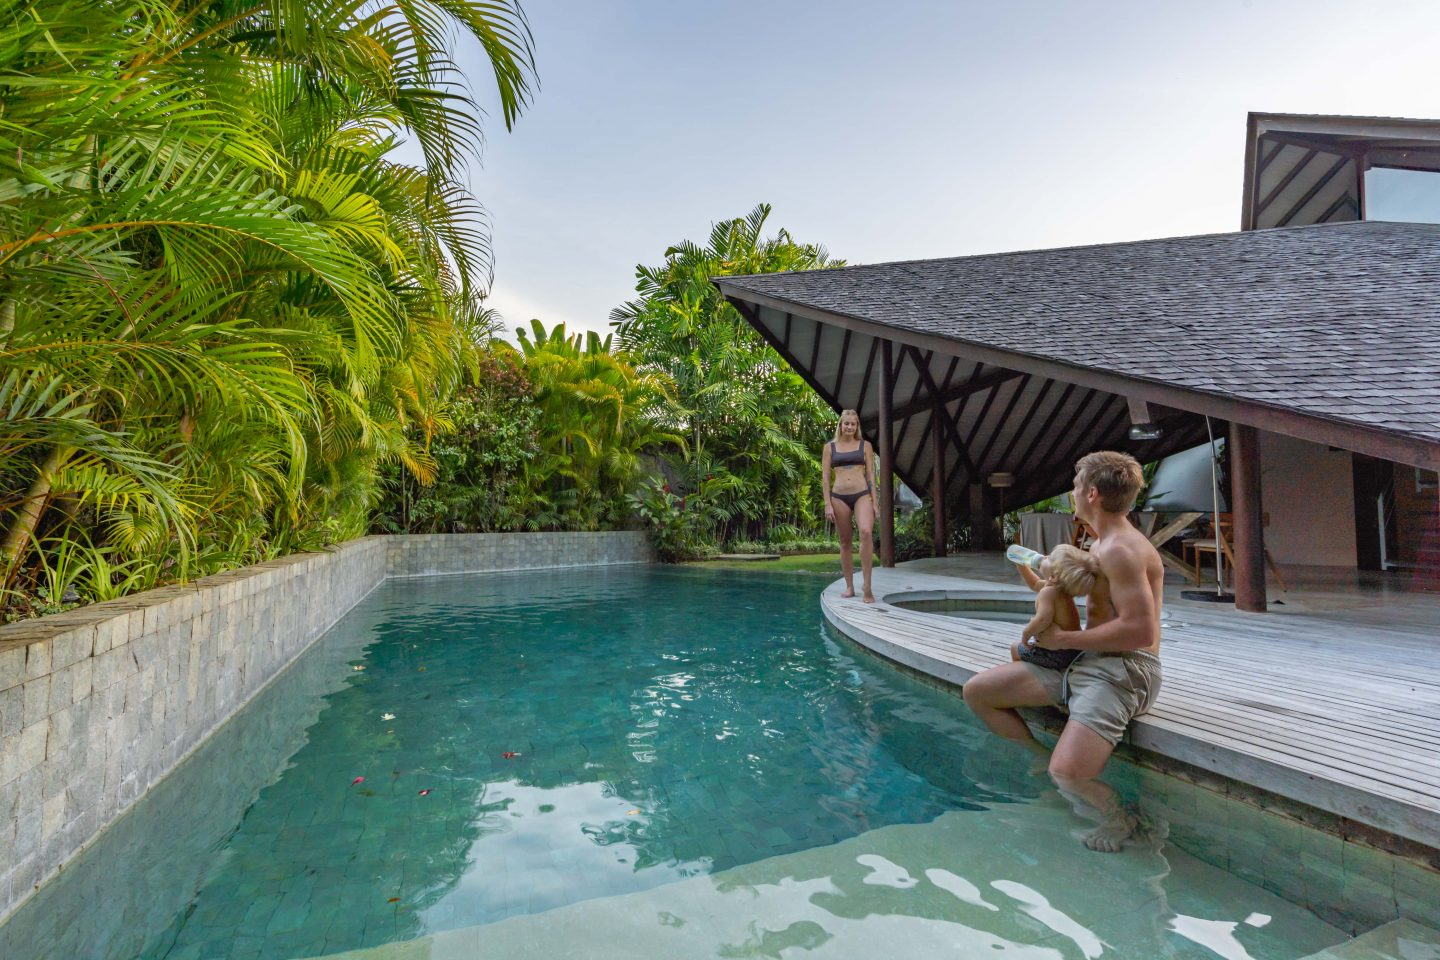 Poolside @ The Layar - Live Life and Roam